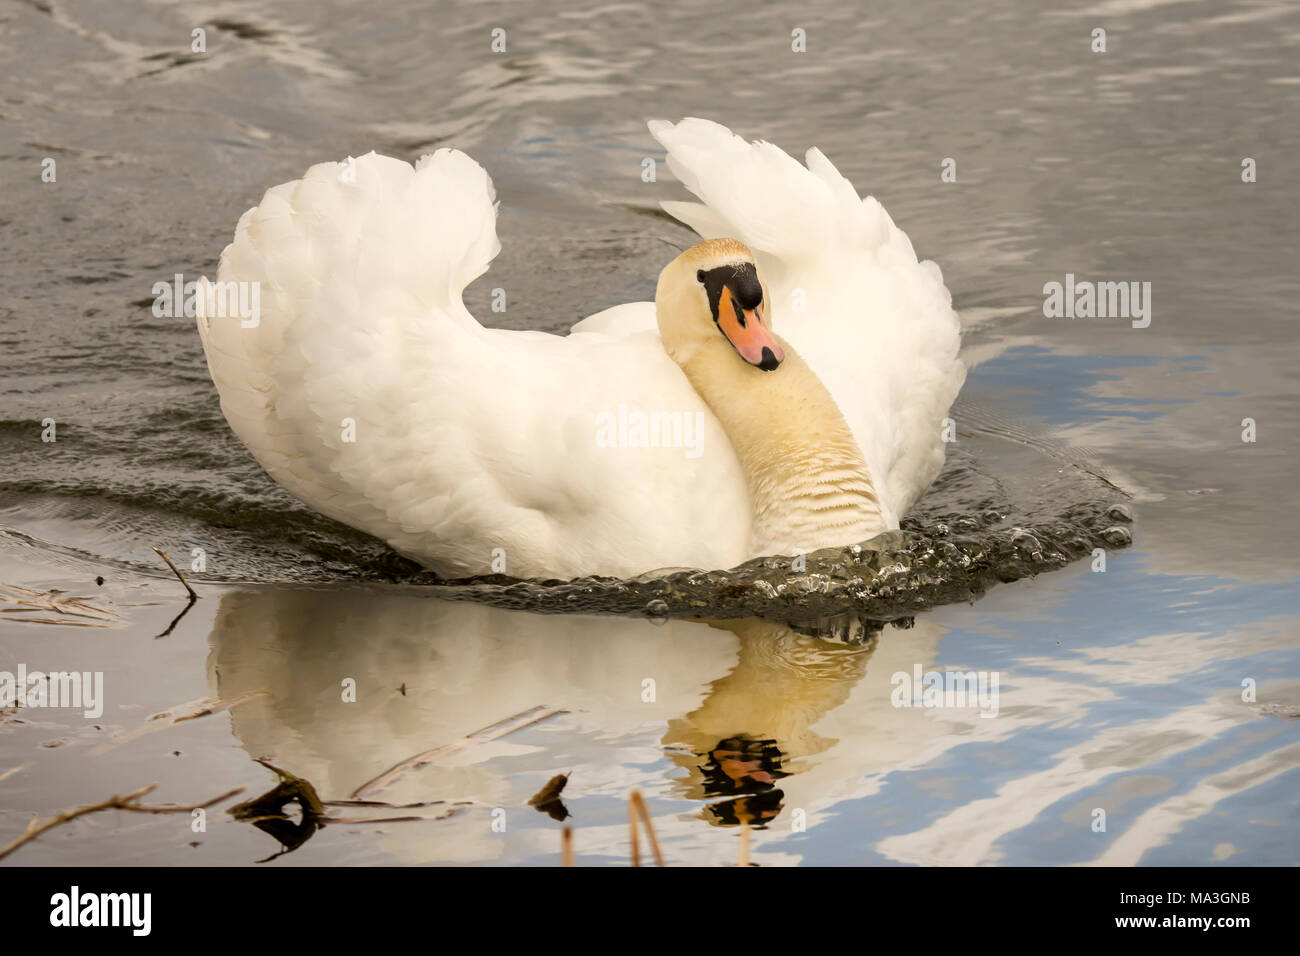 Melton Mowbray 29th March 2017: Grey clouds and rain Swans breeding, gresse and ducks battle for a breeding partner. Tafted ducks North America, Vagrant Visitors,  . Clifford Norton alamy Live News. - Stock Image